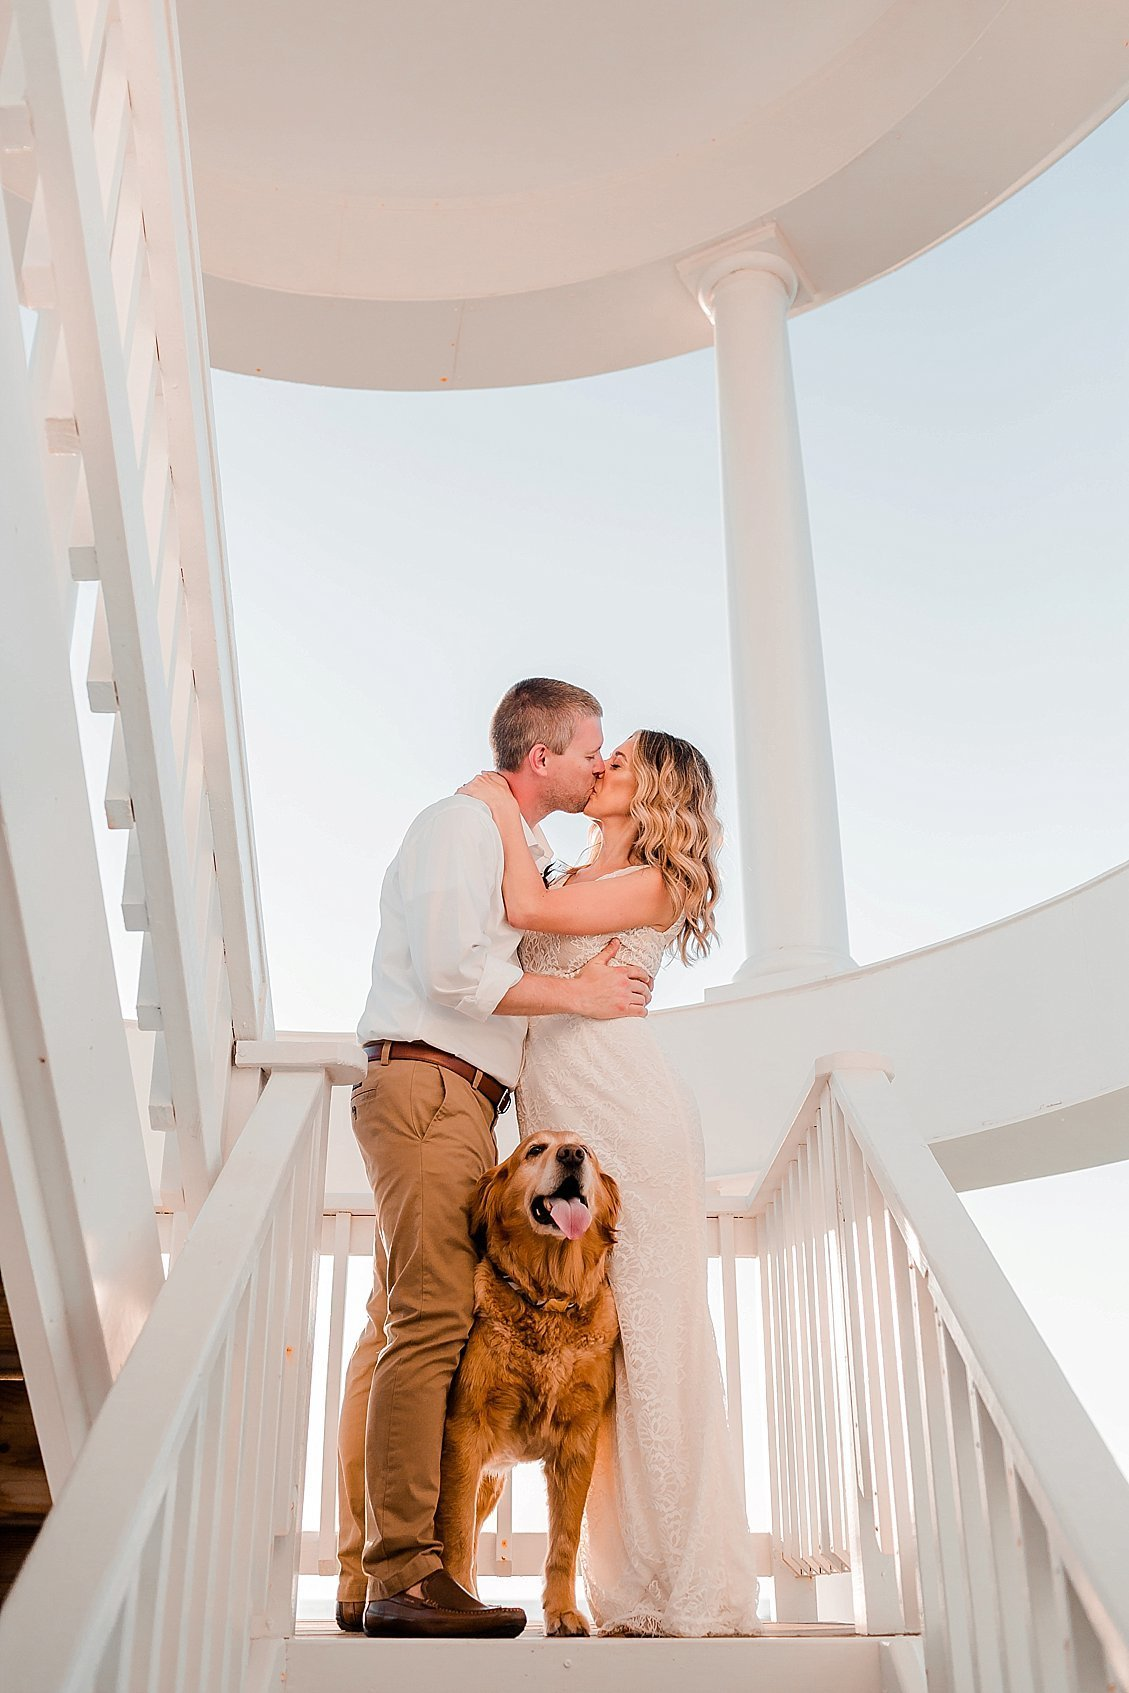 sharonelizabethphotography-obxwedding-rodanthewedding-obxweddingphotographer-intimatebeachwedding2746